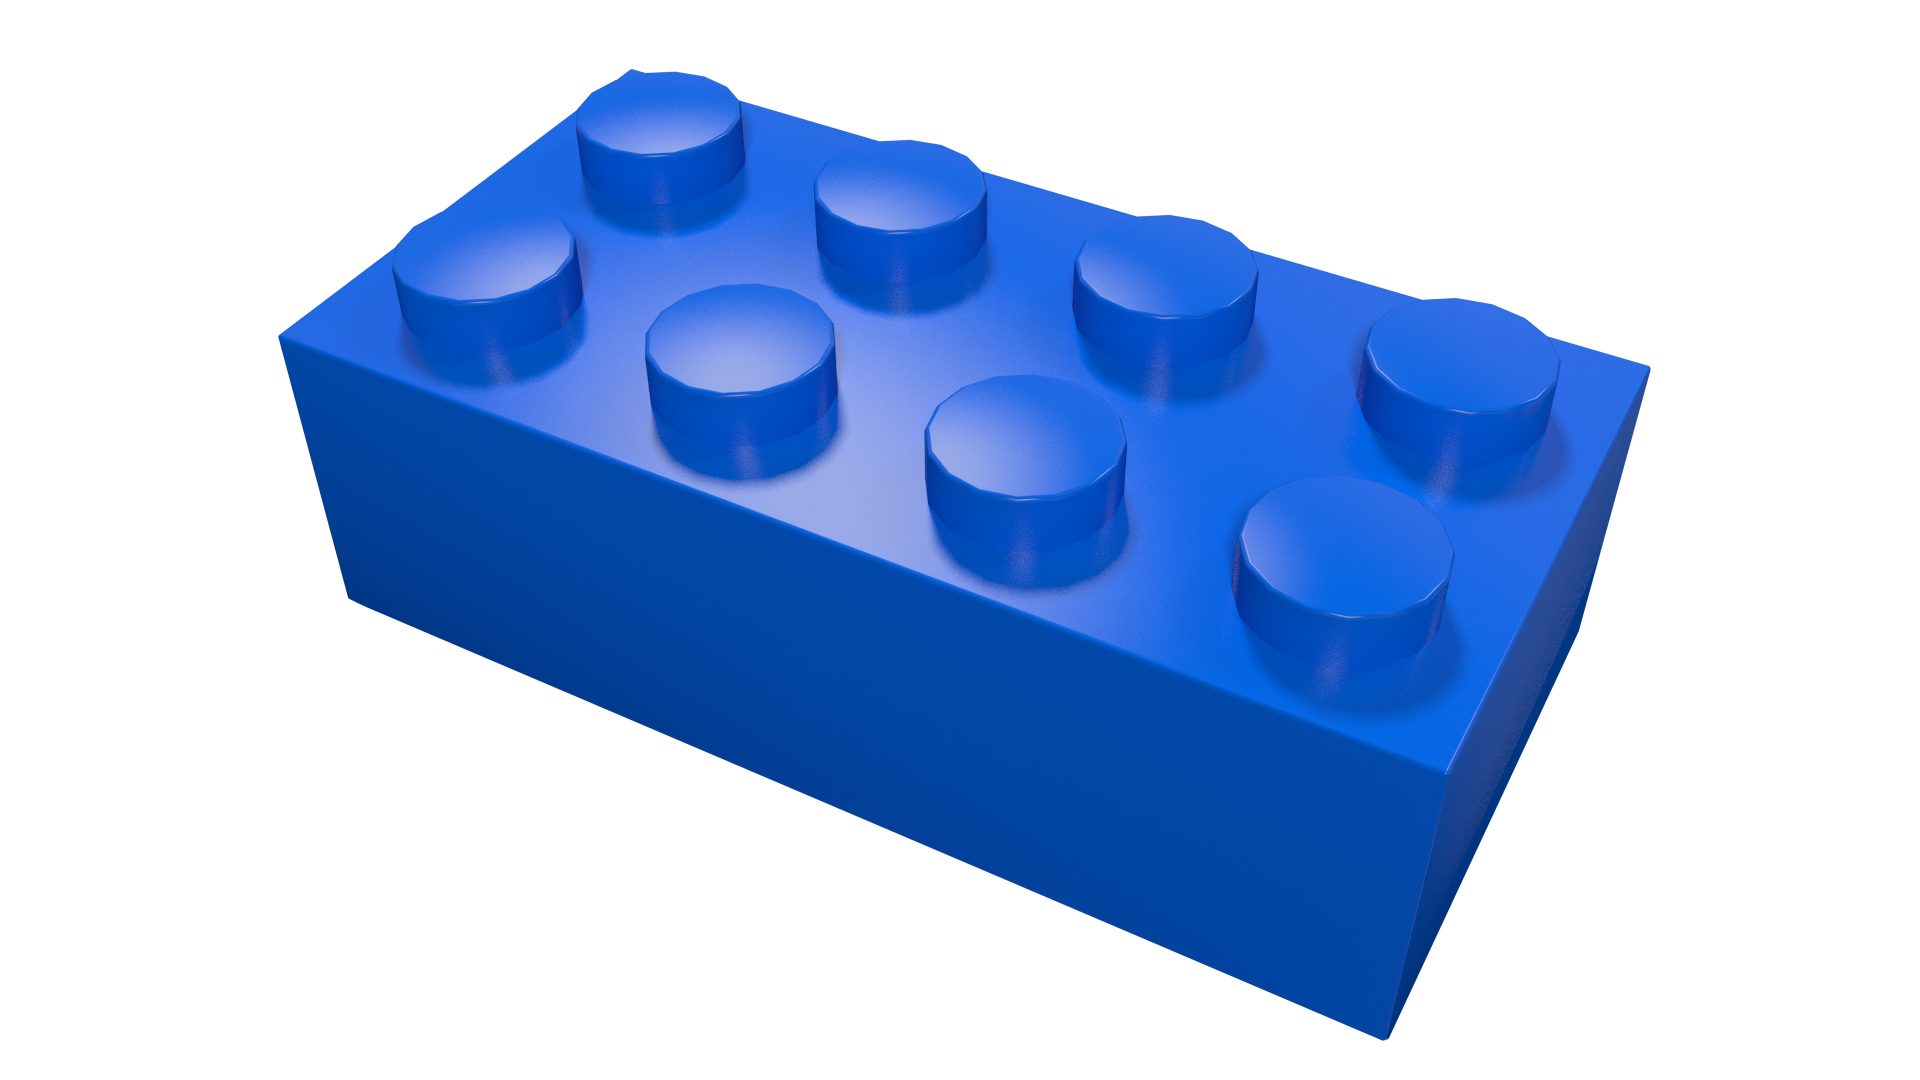 Lego pieces clipart jpg library library LEGO Materials in Blender Cycles | Rioforce's Secret Lair jpg library library